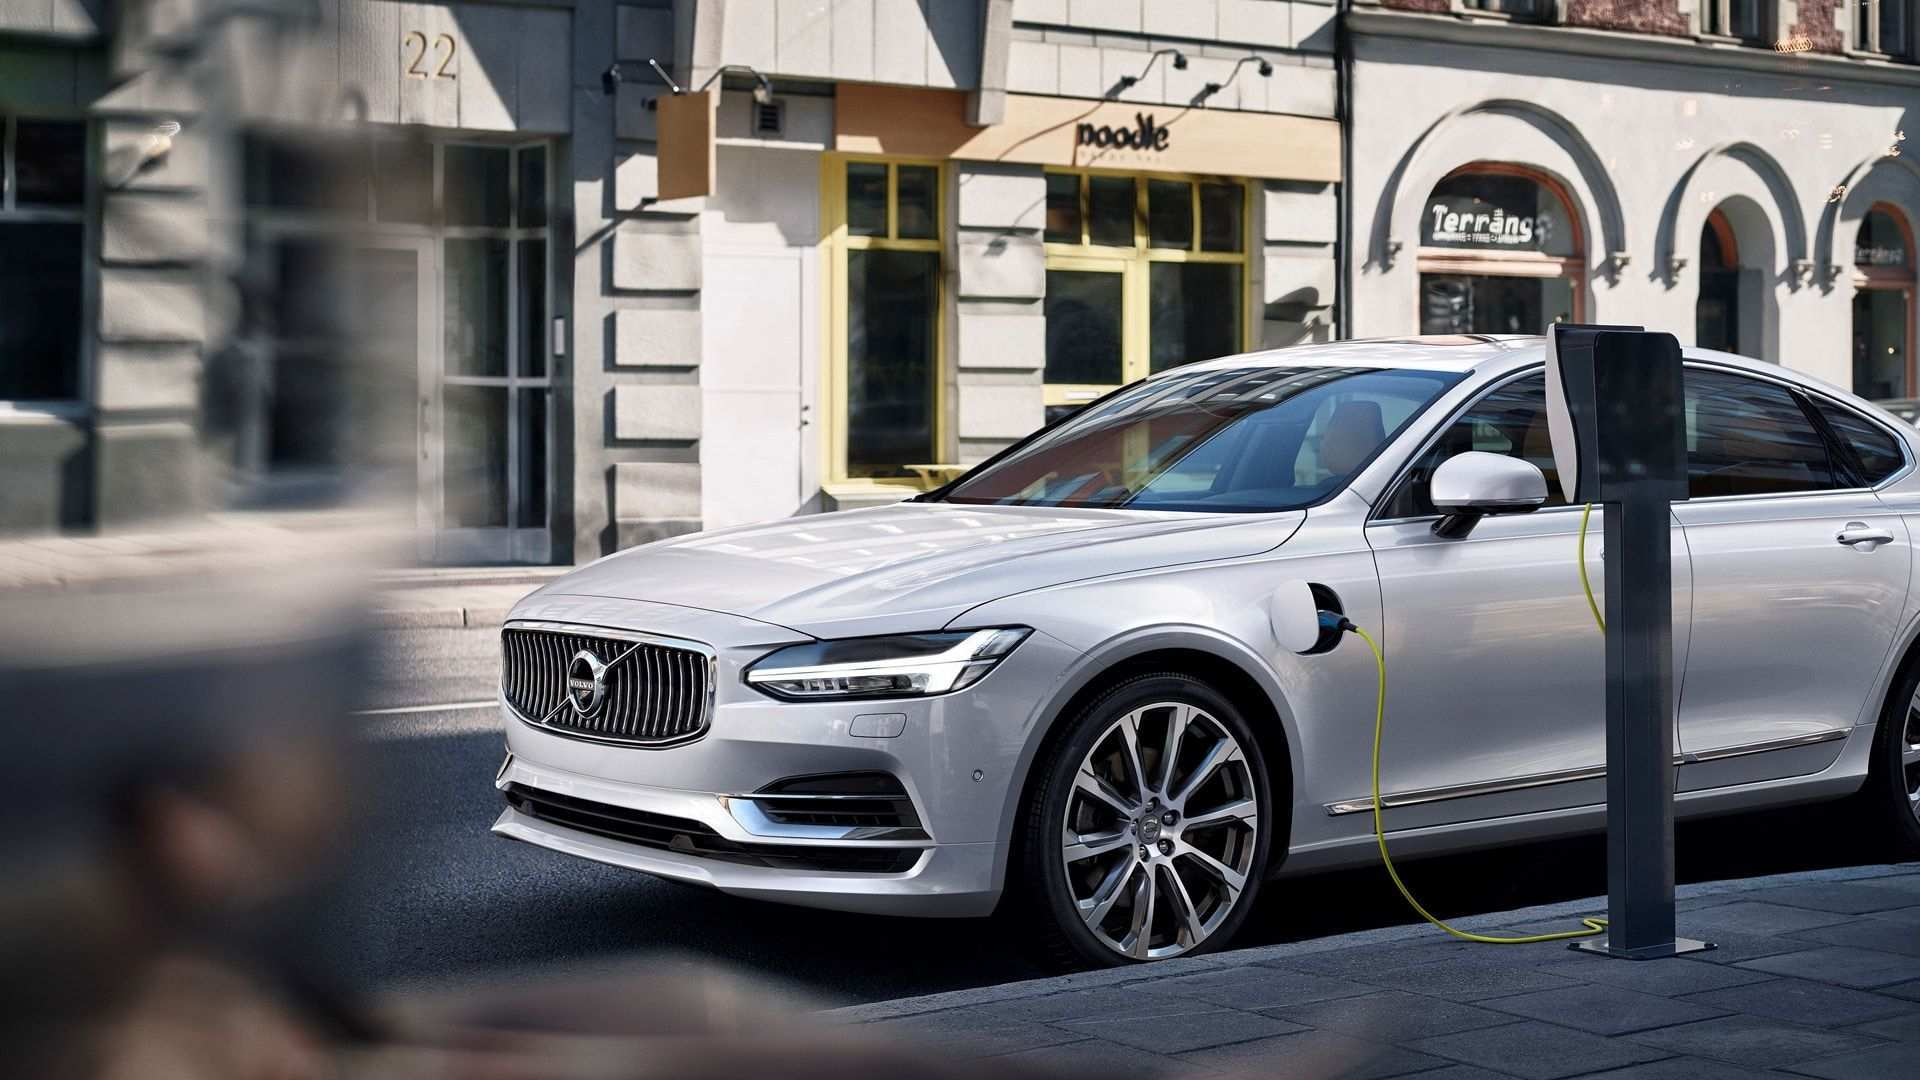 72 Best Review Best Volvo Cars 2019 Models Specs Spy Shoot with Best Volvo Cars 2019 Models Specs